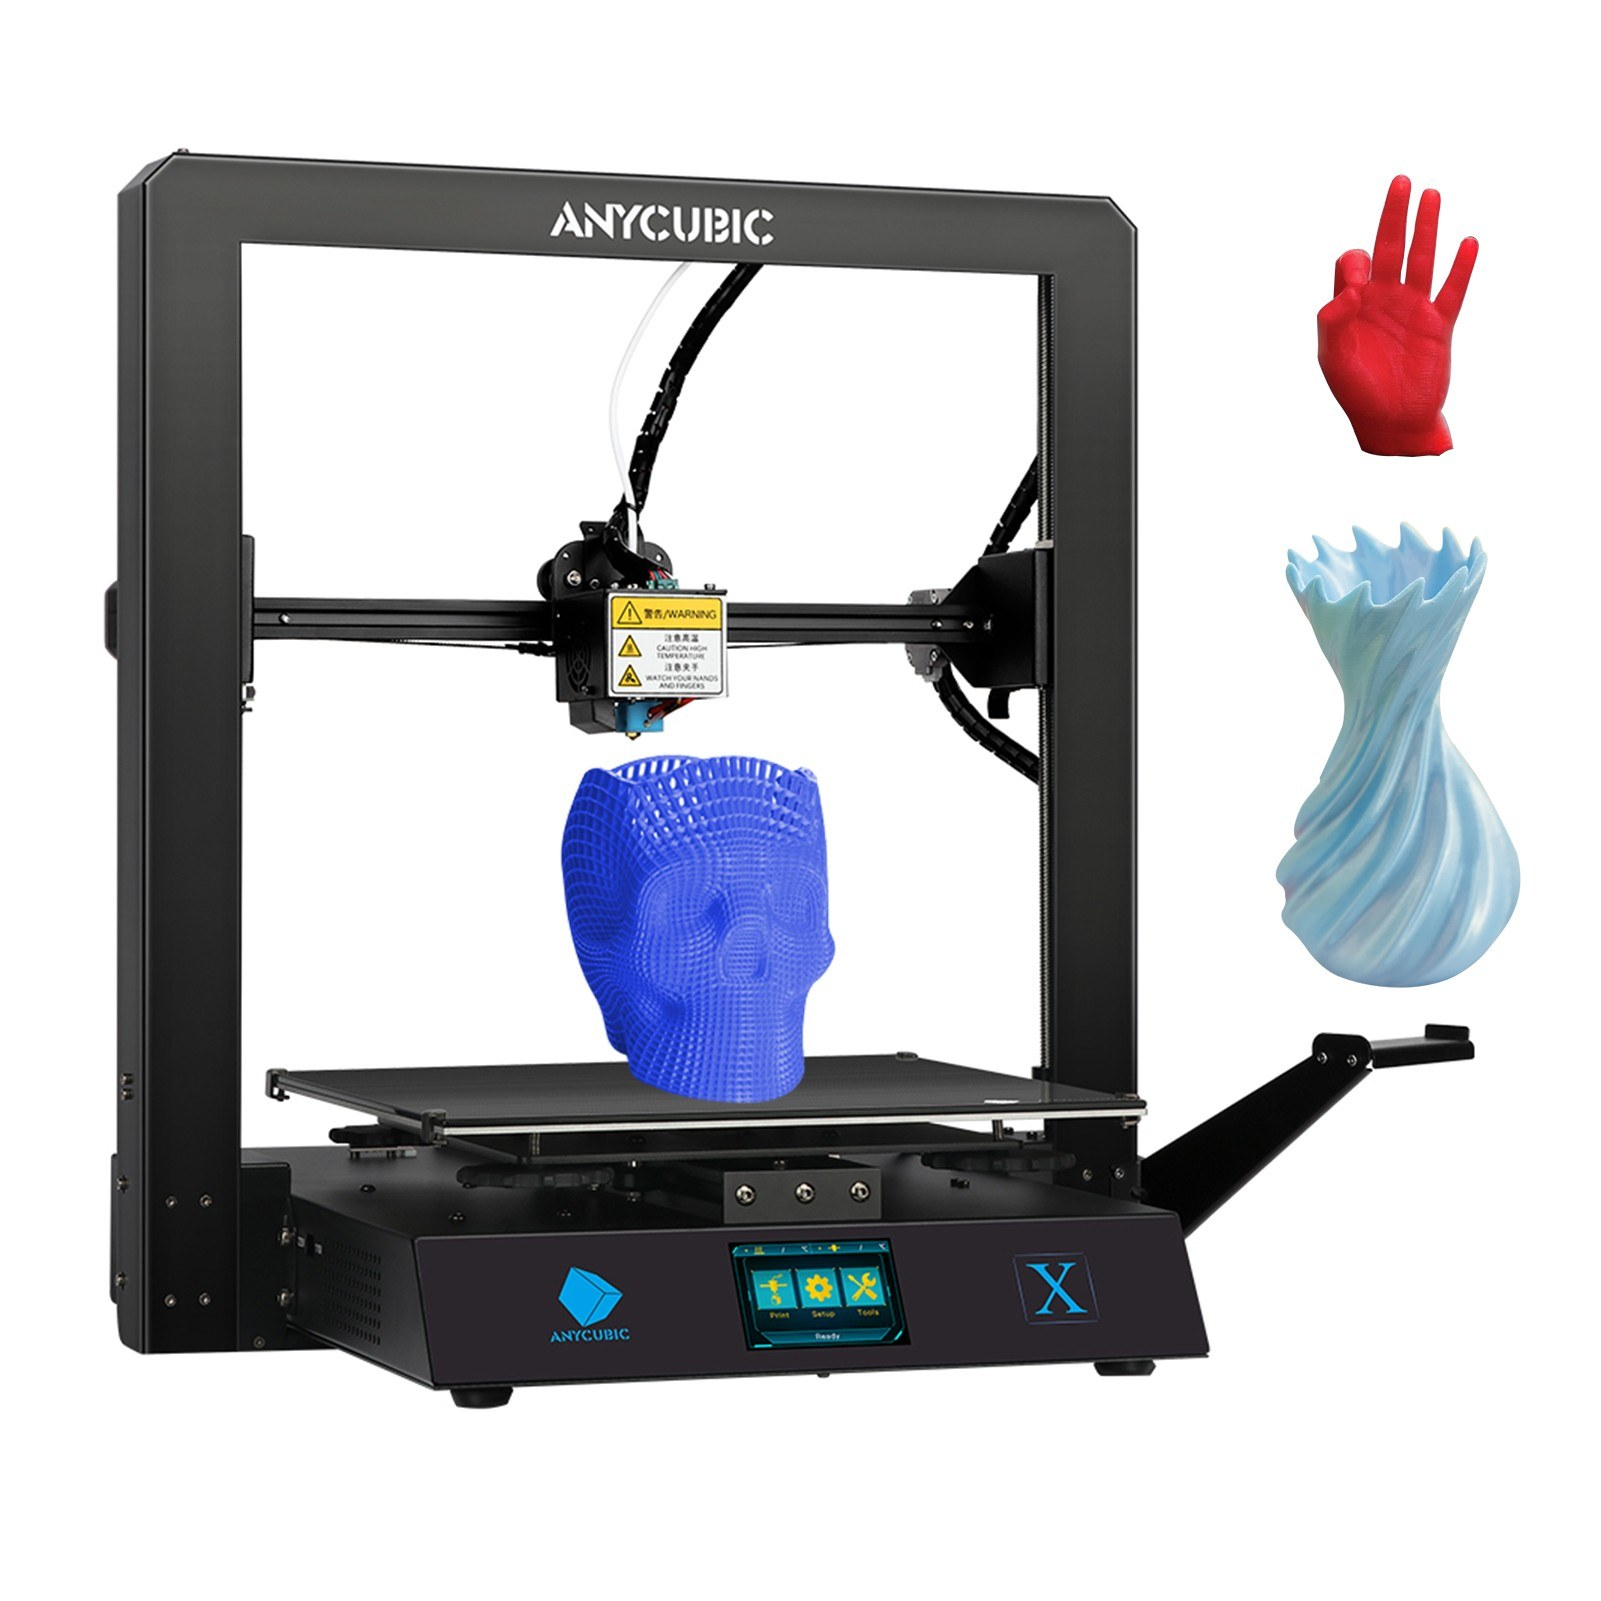 Tomtop - [US Warehouse] $130 OFF ANYCUBIC MEGA X 3D Printer Kit, Flash Sale $340.39